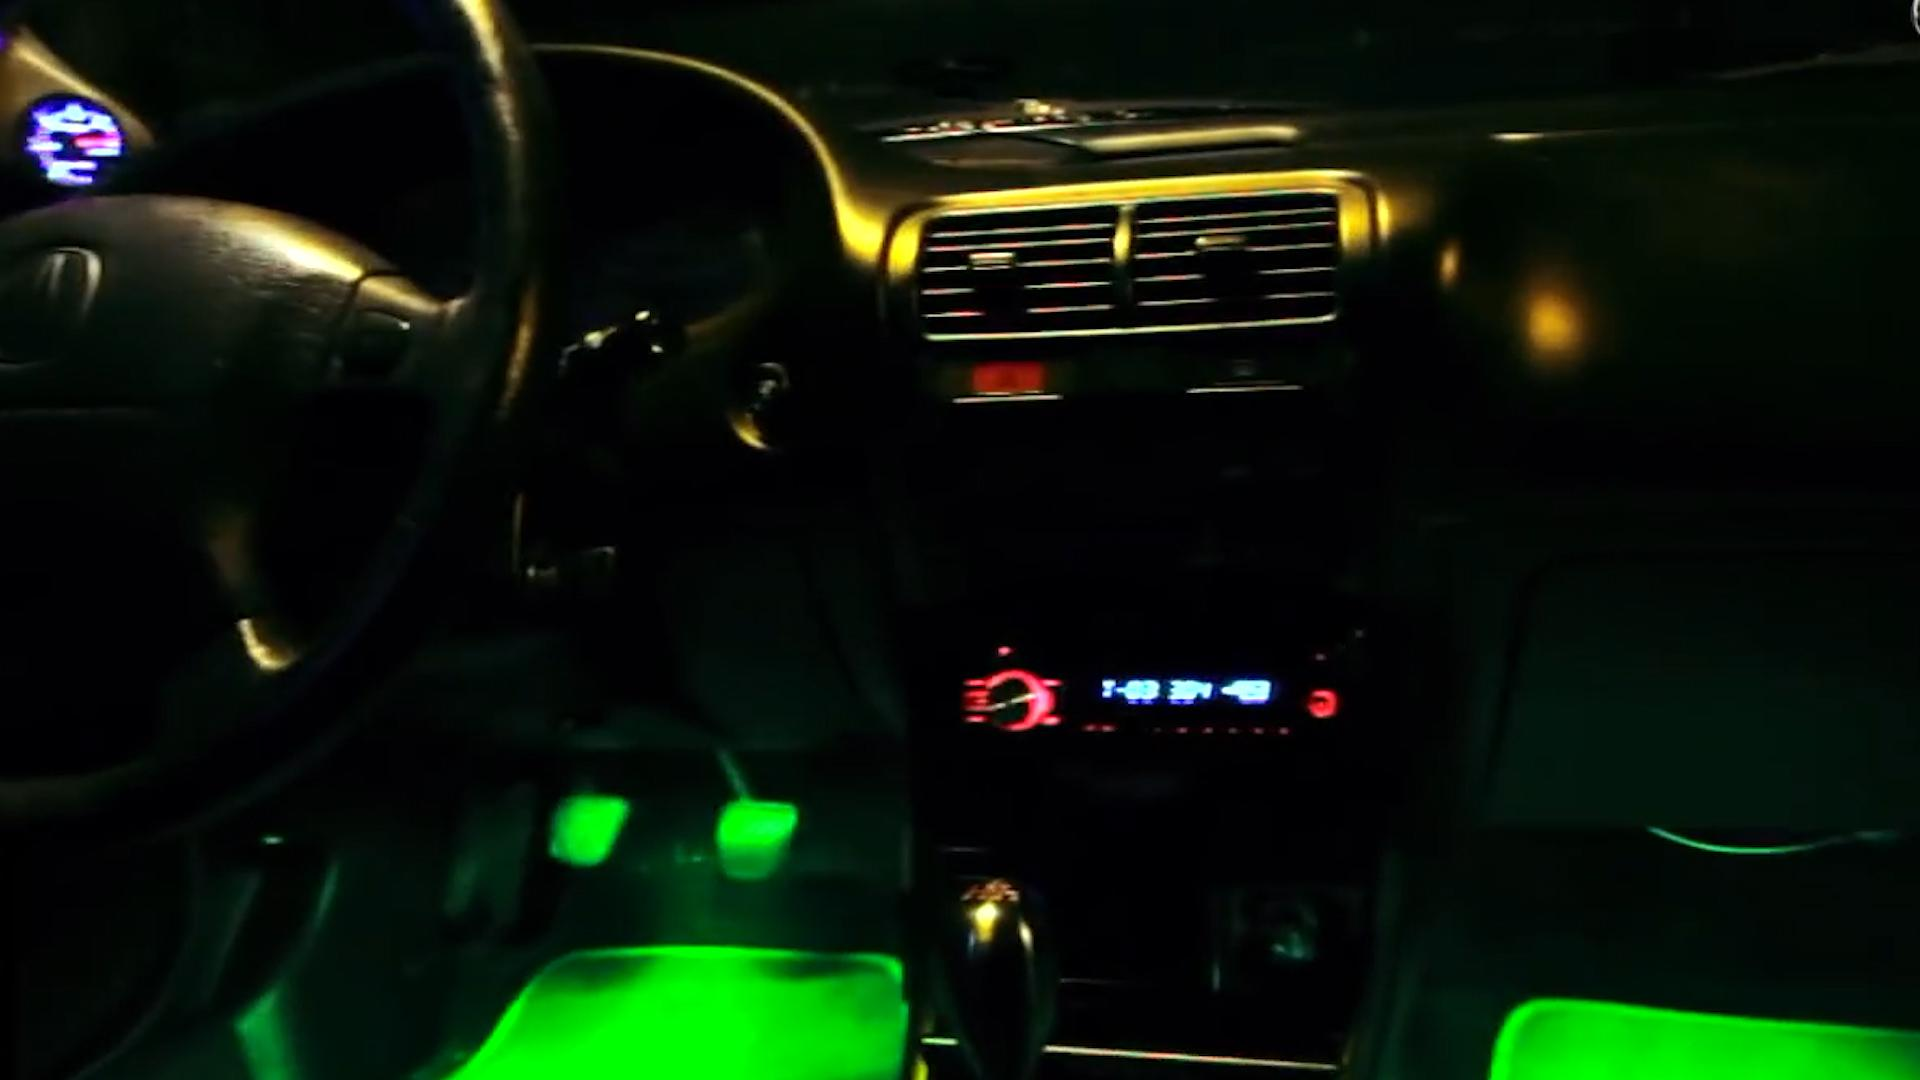 This LED accessory lets you light up the footwells in your car